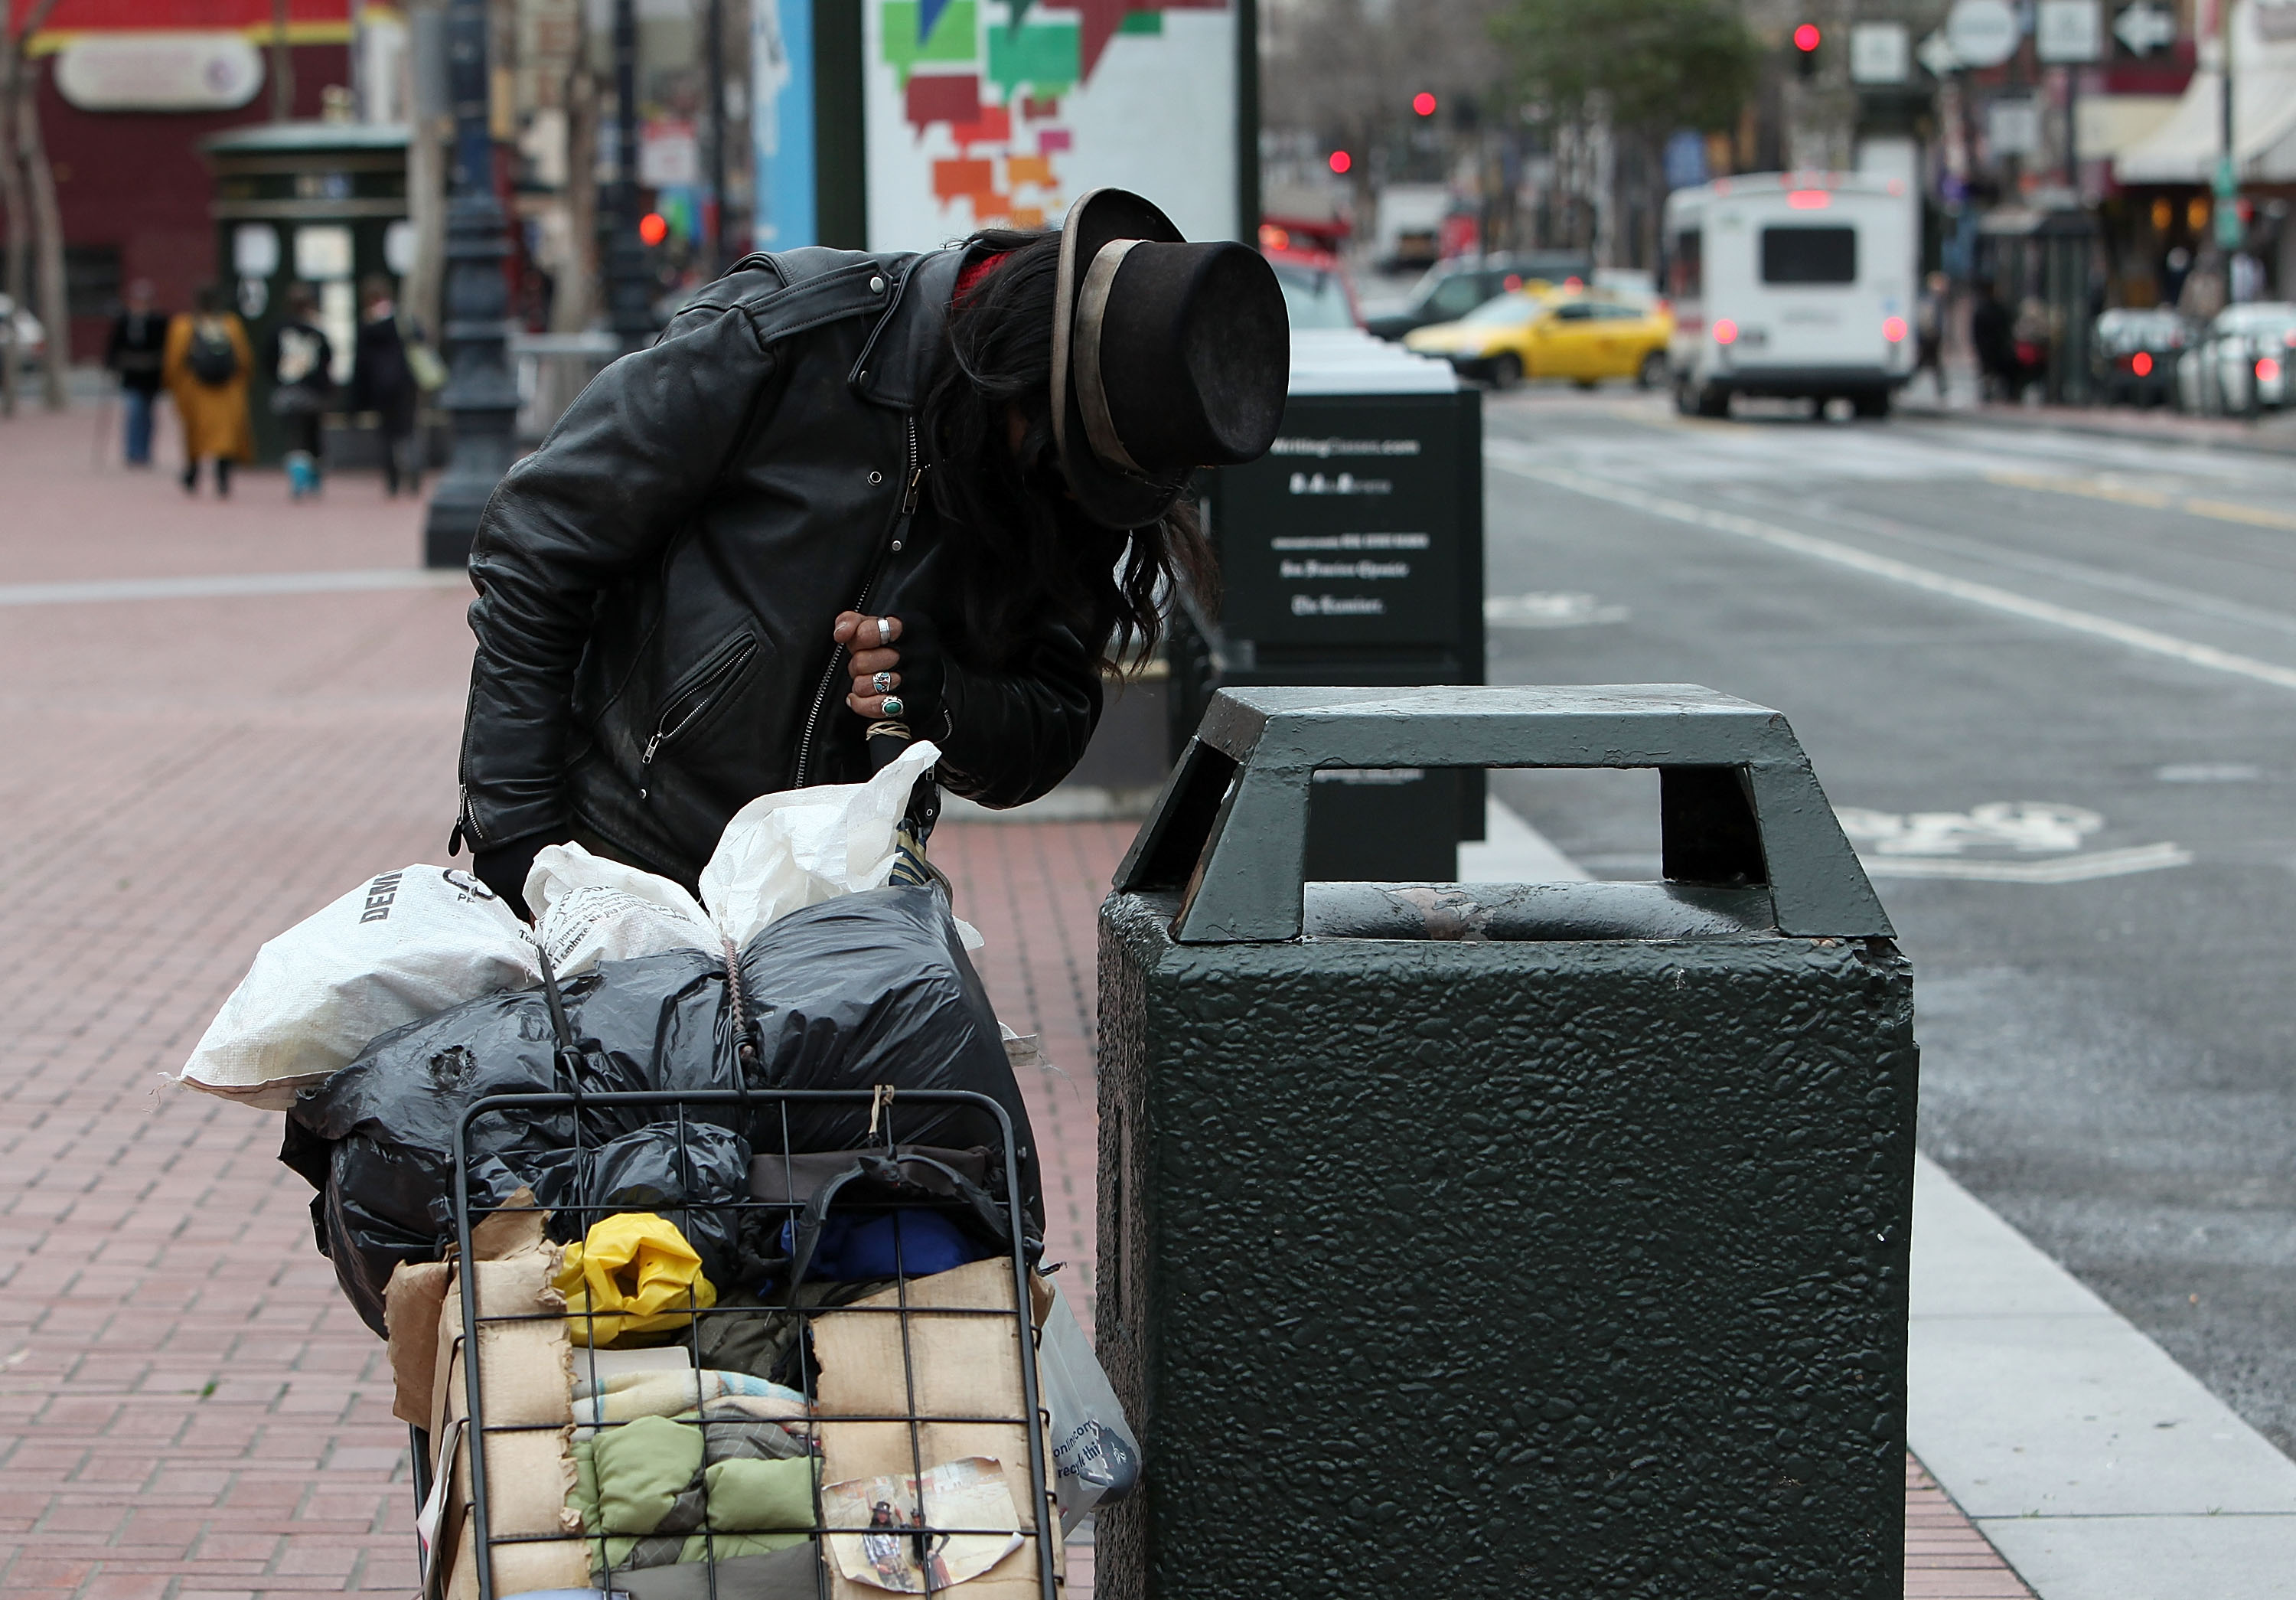 San Francisco Battles With Homelessness Problem